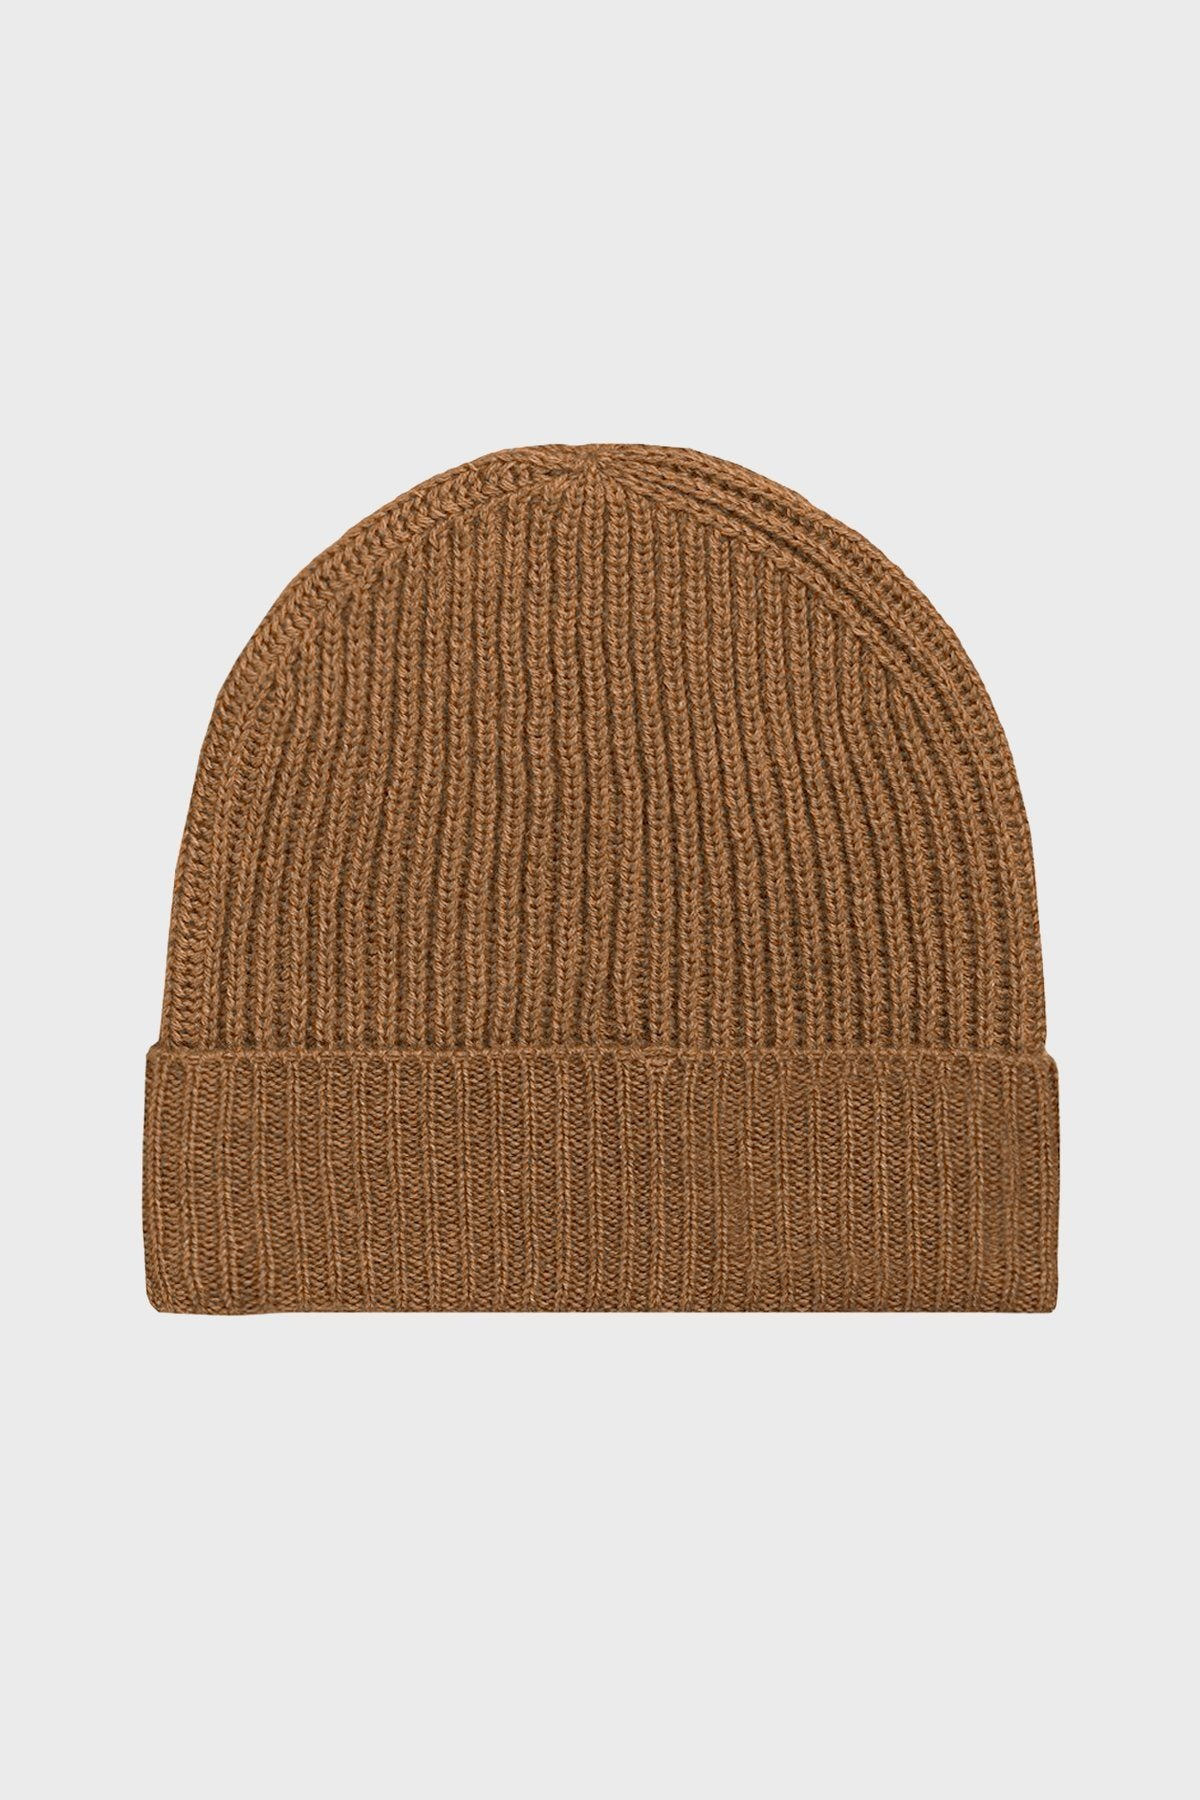 Tobacco Merino Wool Beanie - Life in Paradigm Menswear London